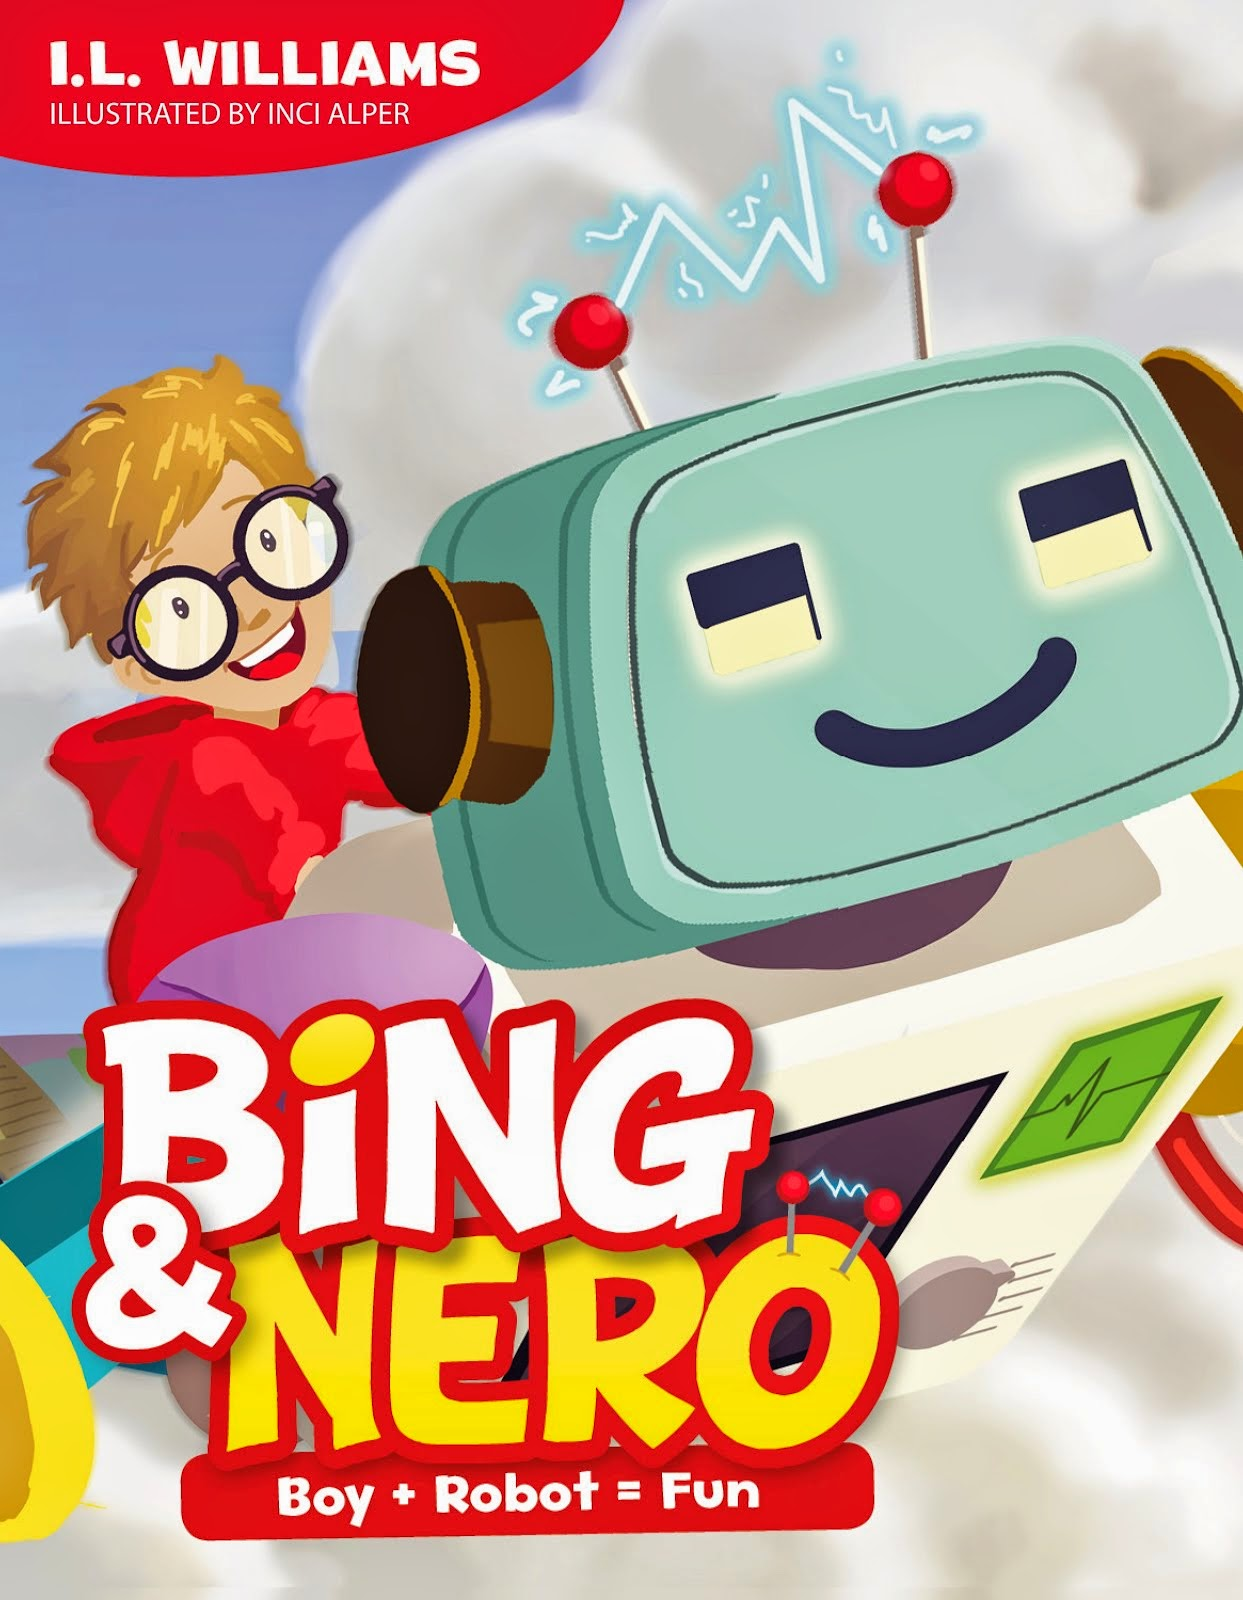 Celebrate creativity with Bing & Nero!